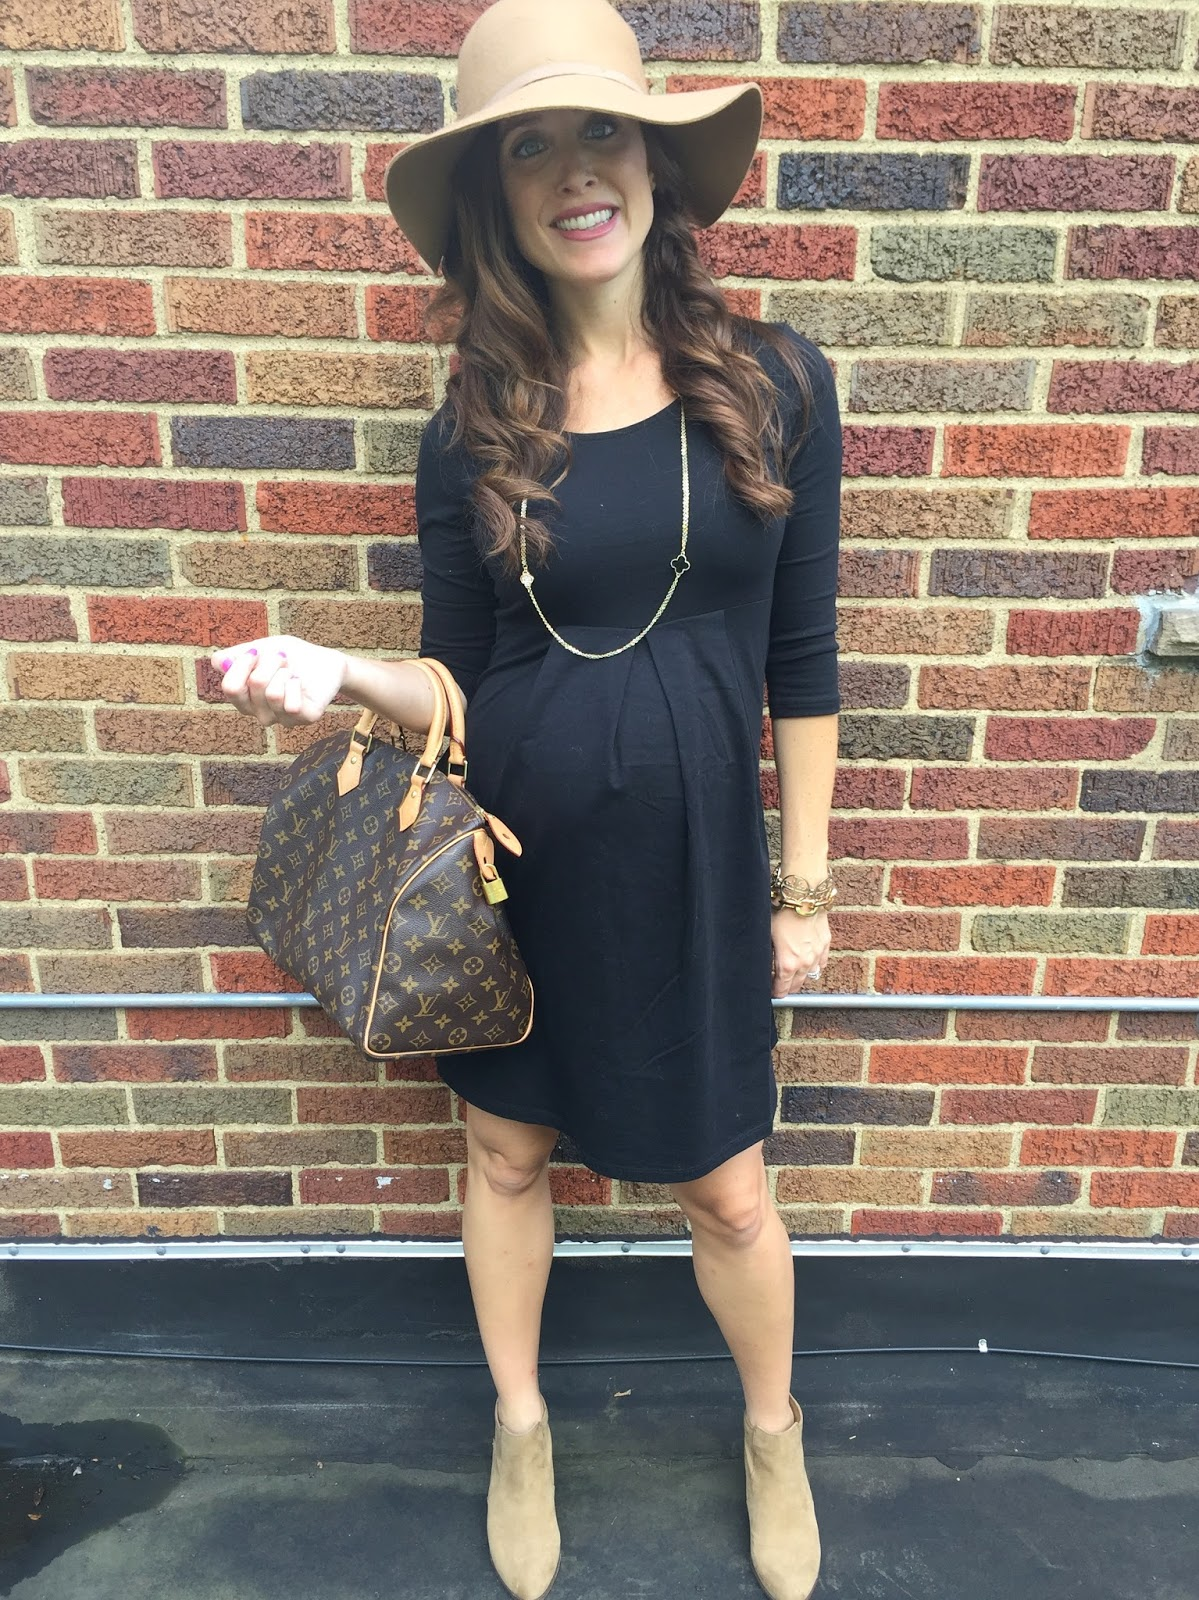 7ac33cf78ab Maternity Black Swing Dress Old Navy  Non-maternity version at Old Navy HERE   Camel wool hat Forever 21  Camel ankle boots similar HERE  Necklace Van  Cleef  ...